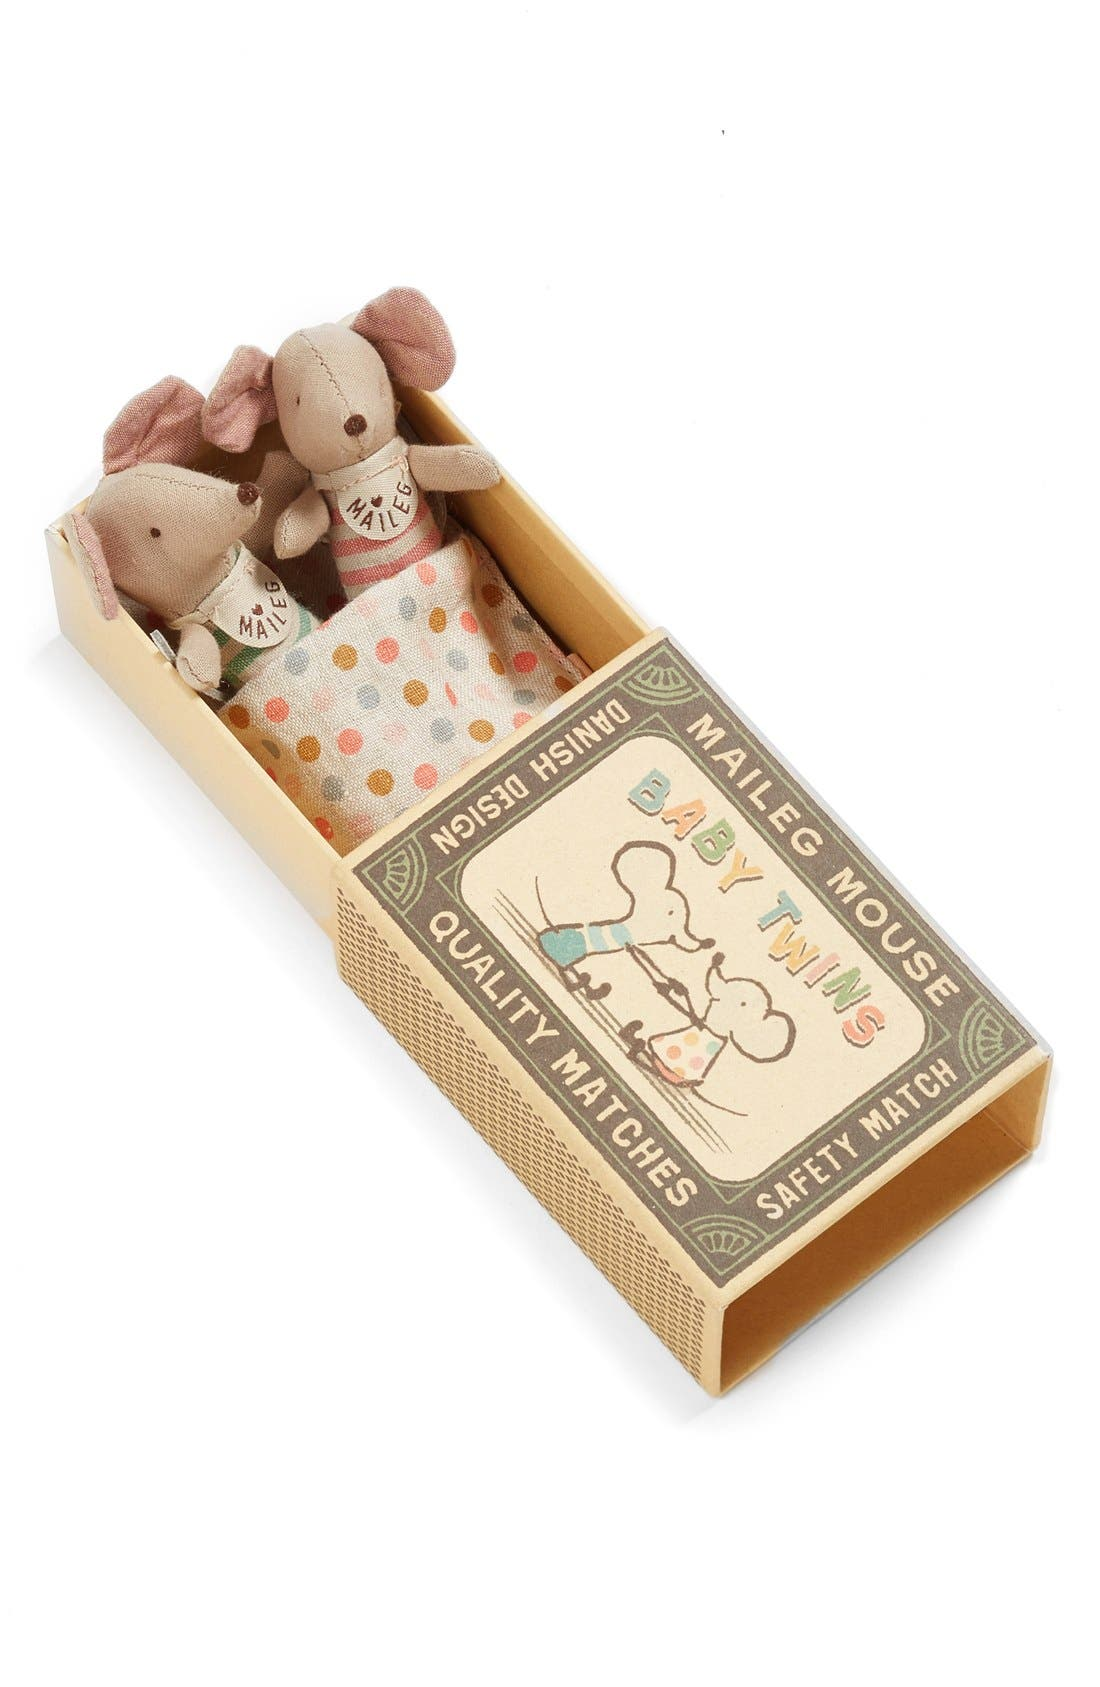 Baby Twins Stuffed Toy Mice in a Box,                             Main thumbnail 1, color,                             060